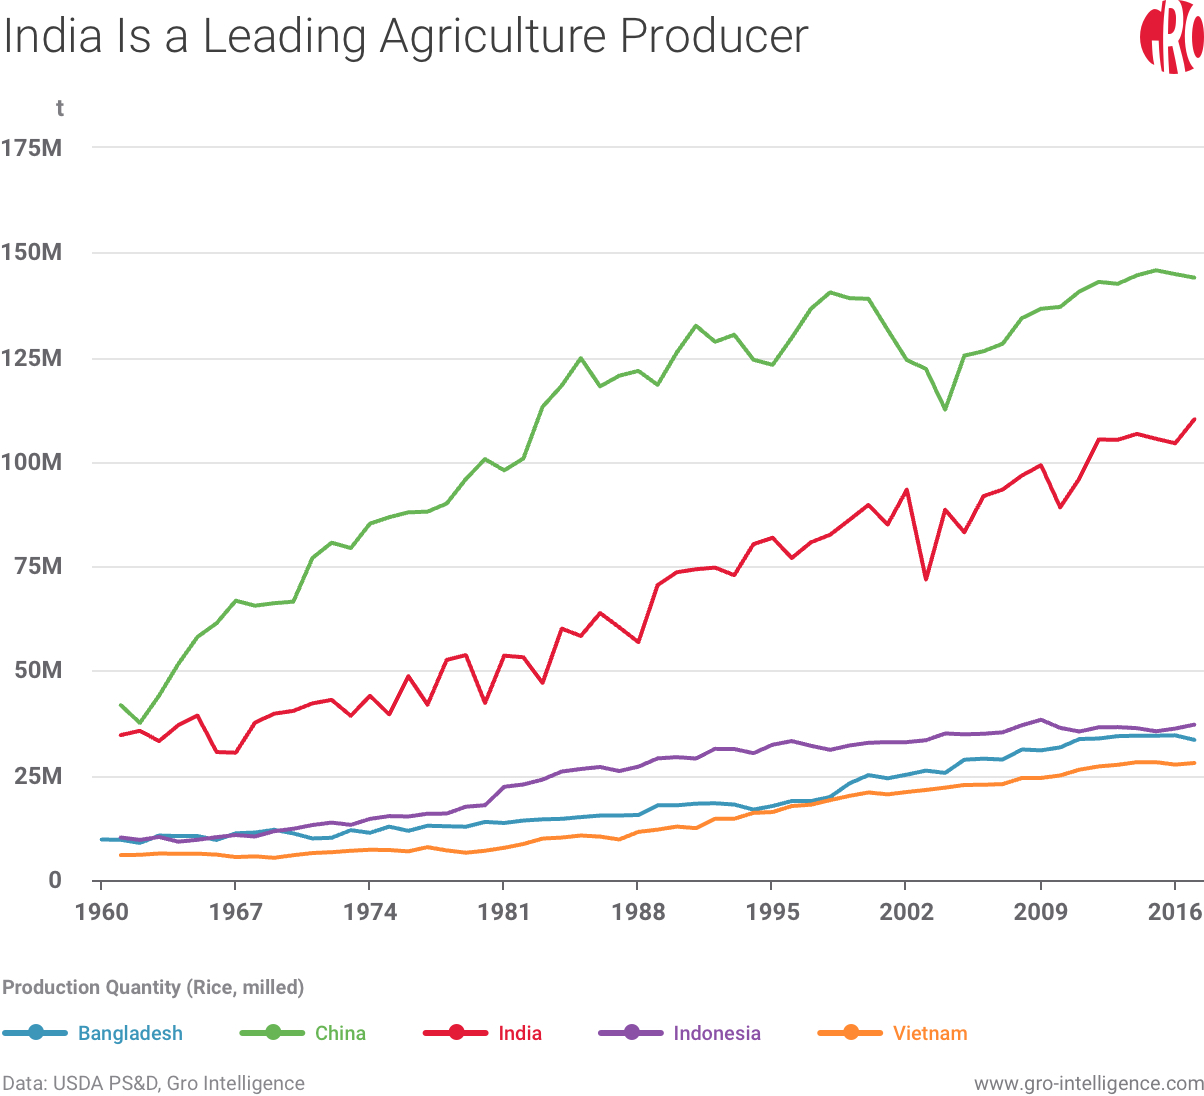 India Is a Leading Agriculture Producer